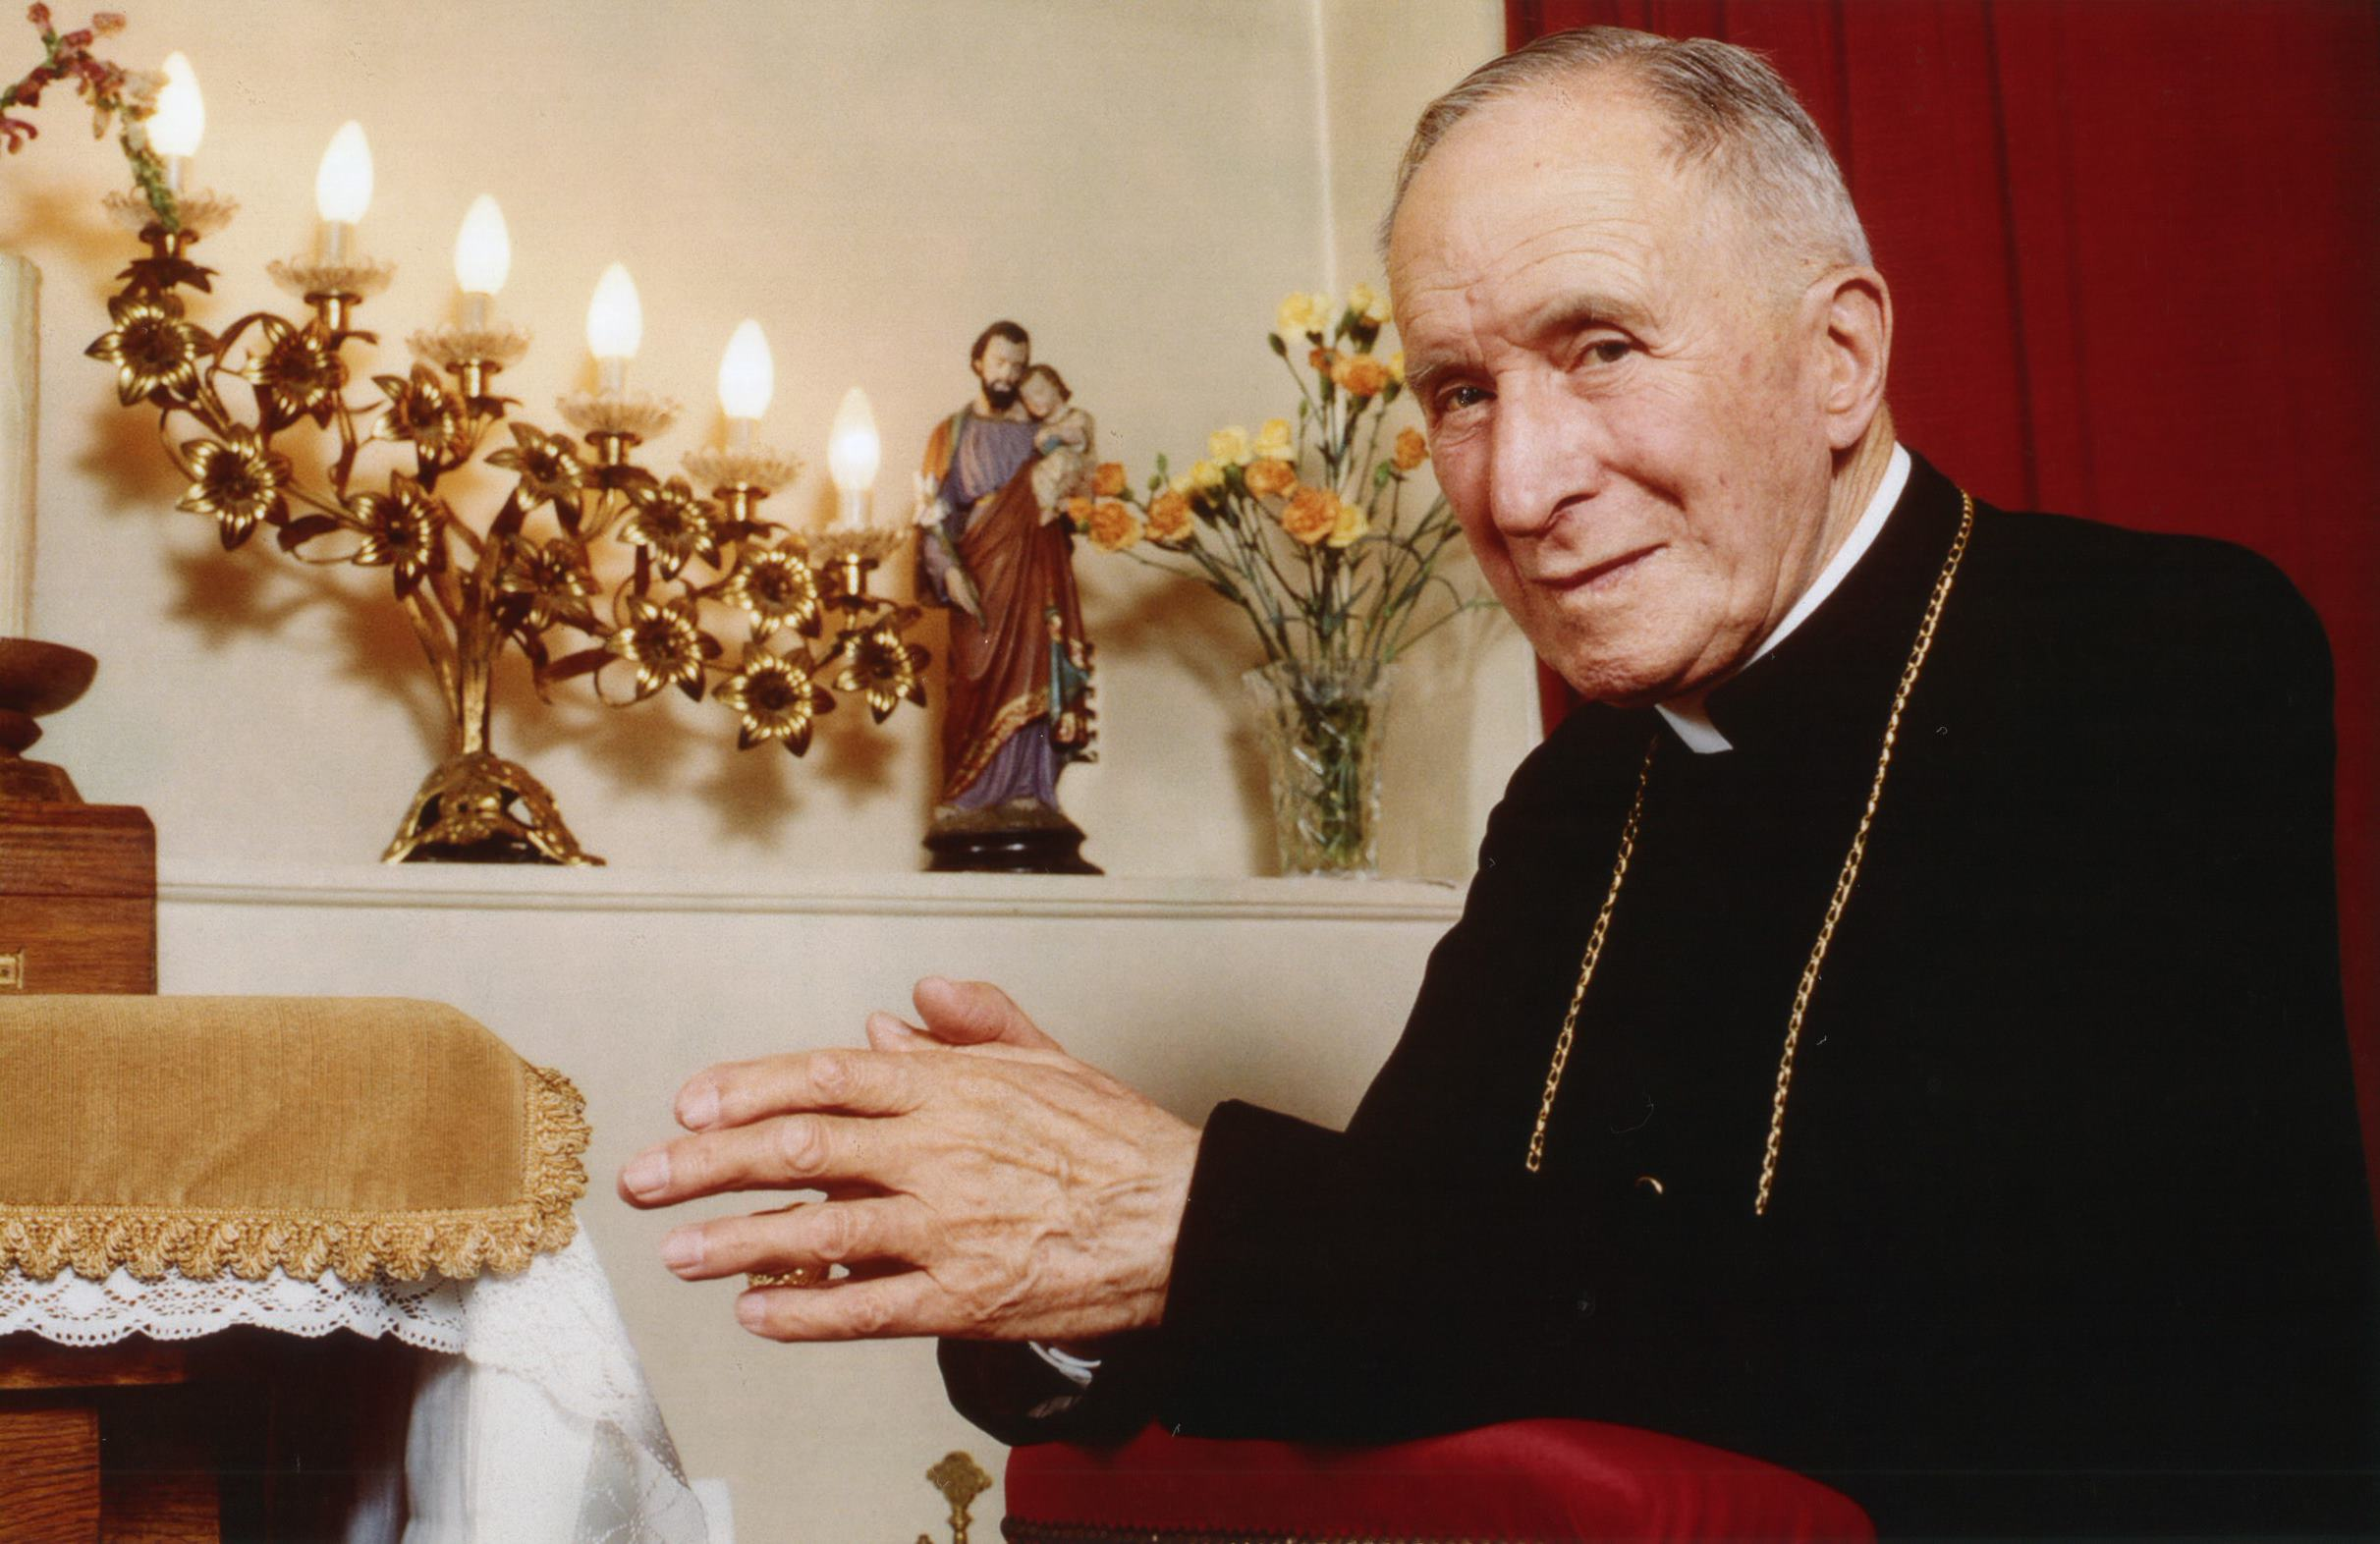 30 Years Ago Operation Survival: The Story of the Episcopal Consecrations  (4) - FSSPX.Actualités / FSSPX.News